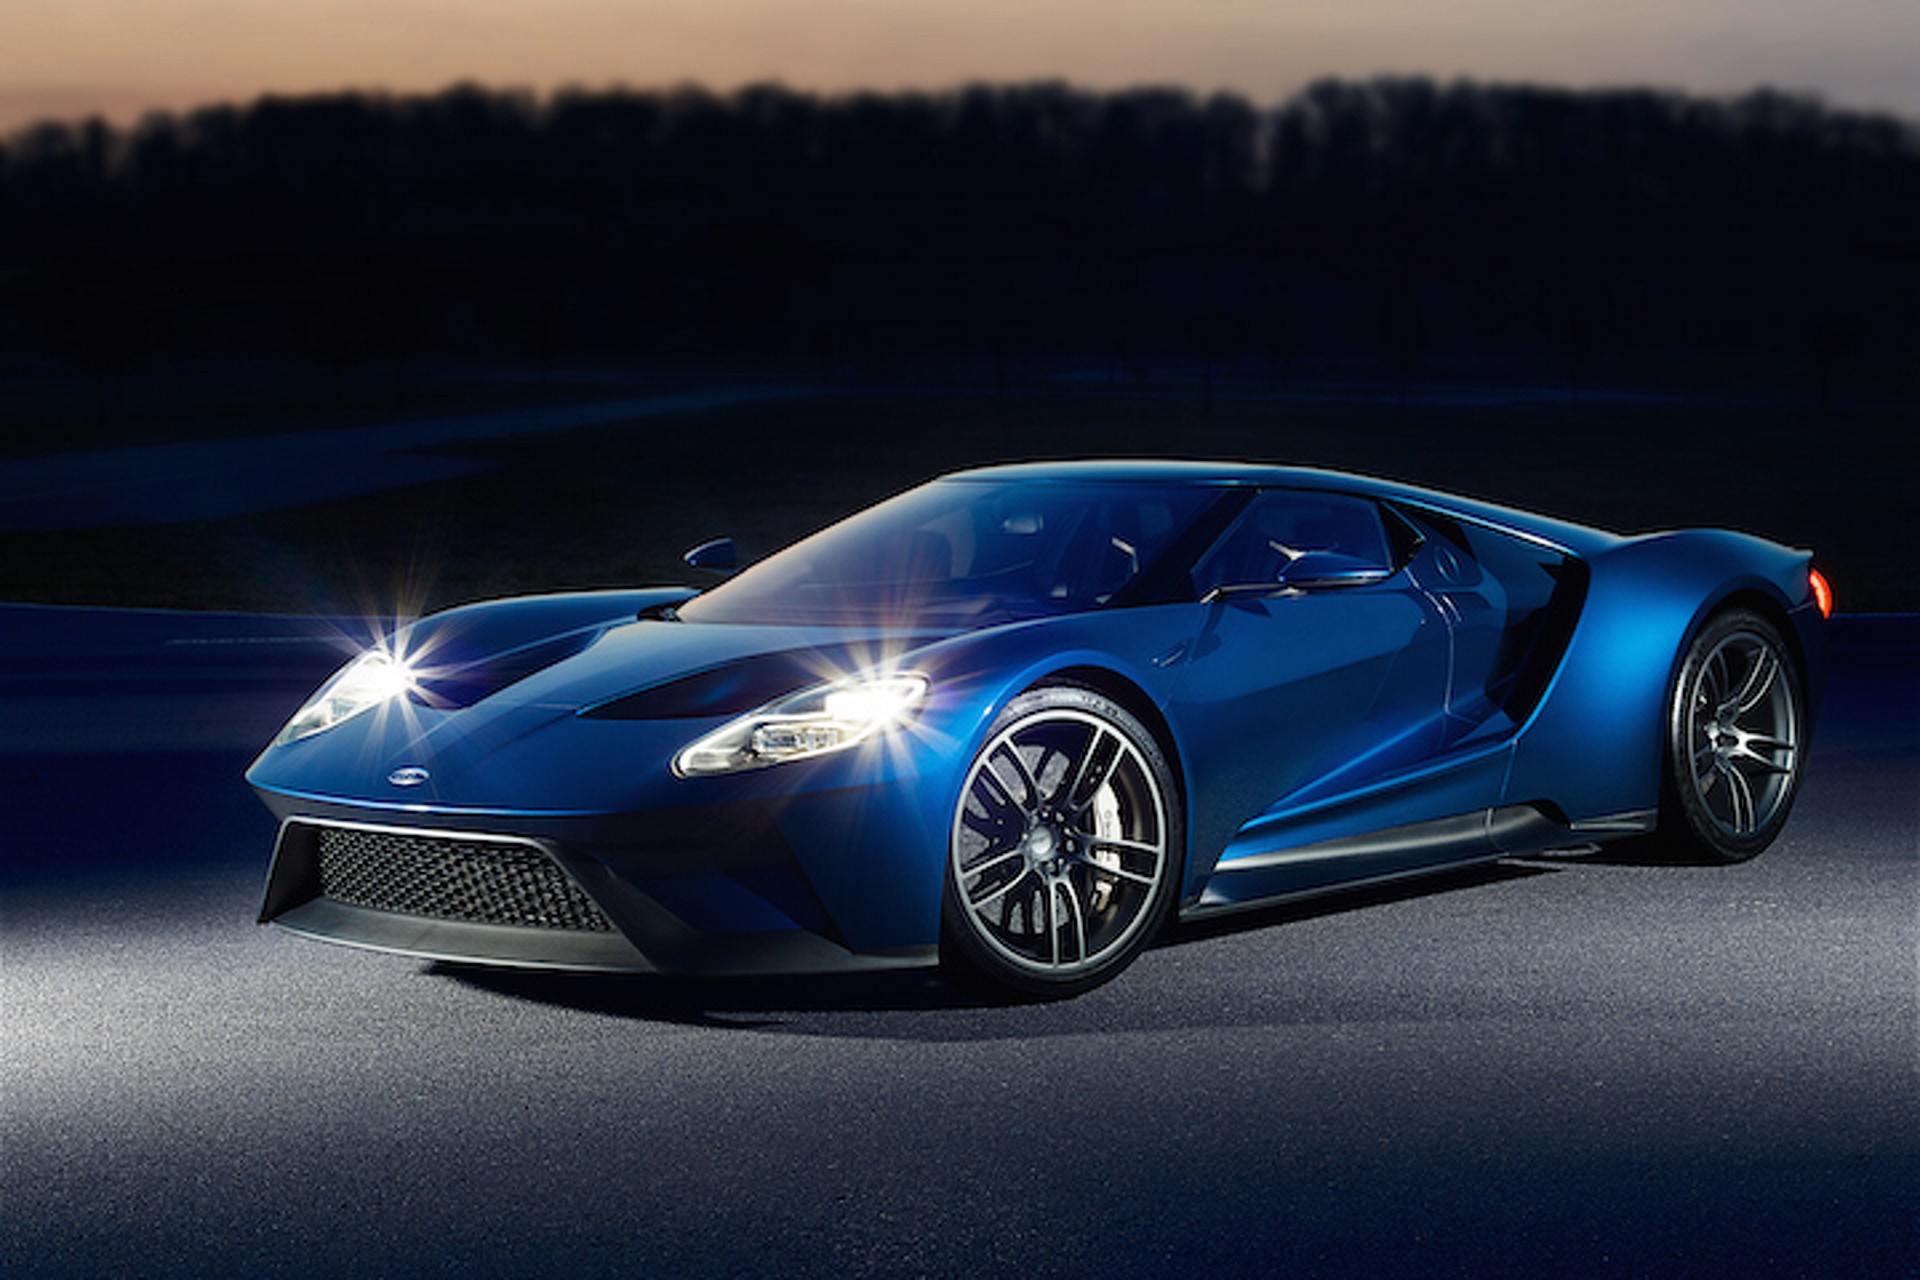 Ford Gt Specs Revealed Via Forza Motorsport Video Game